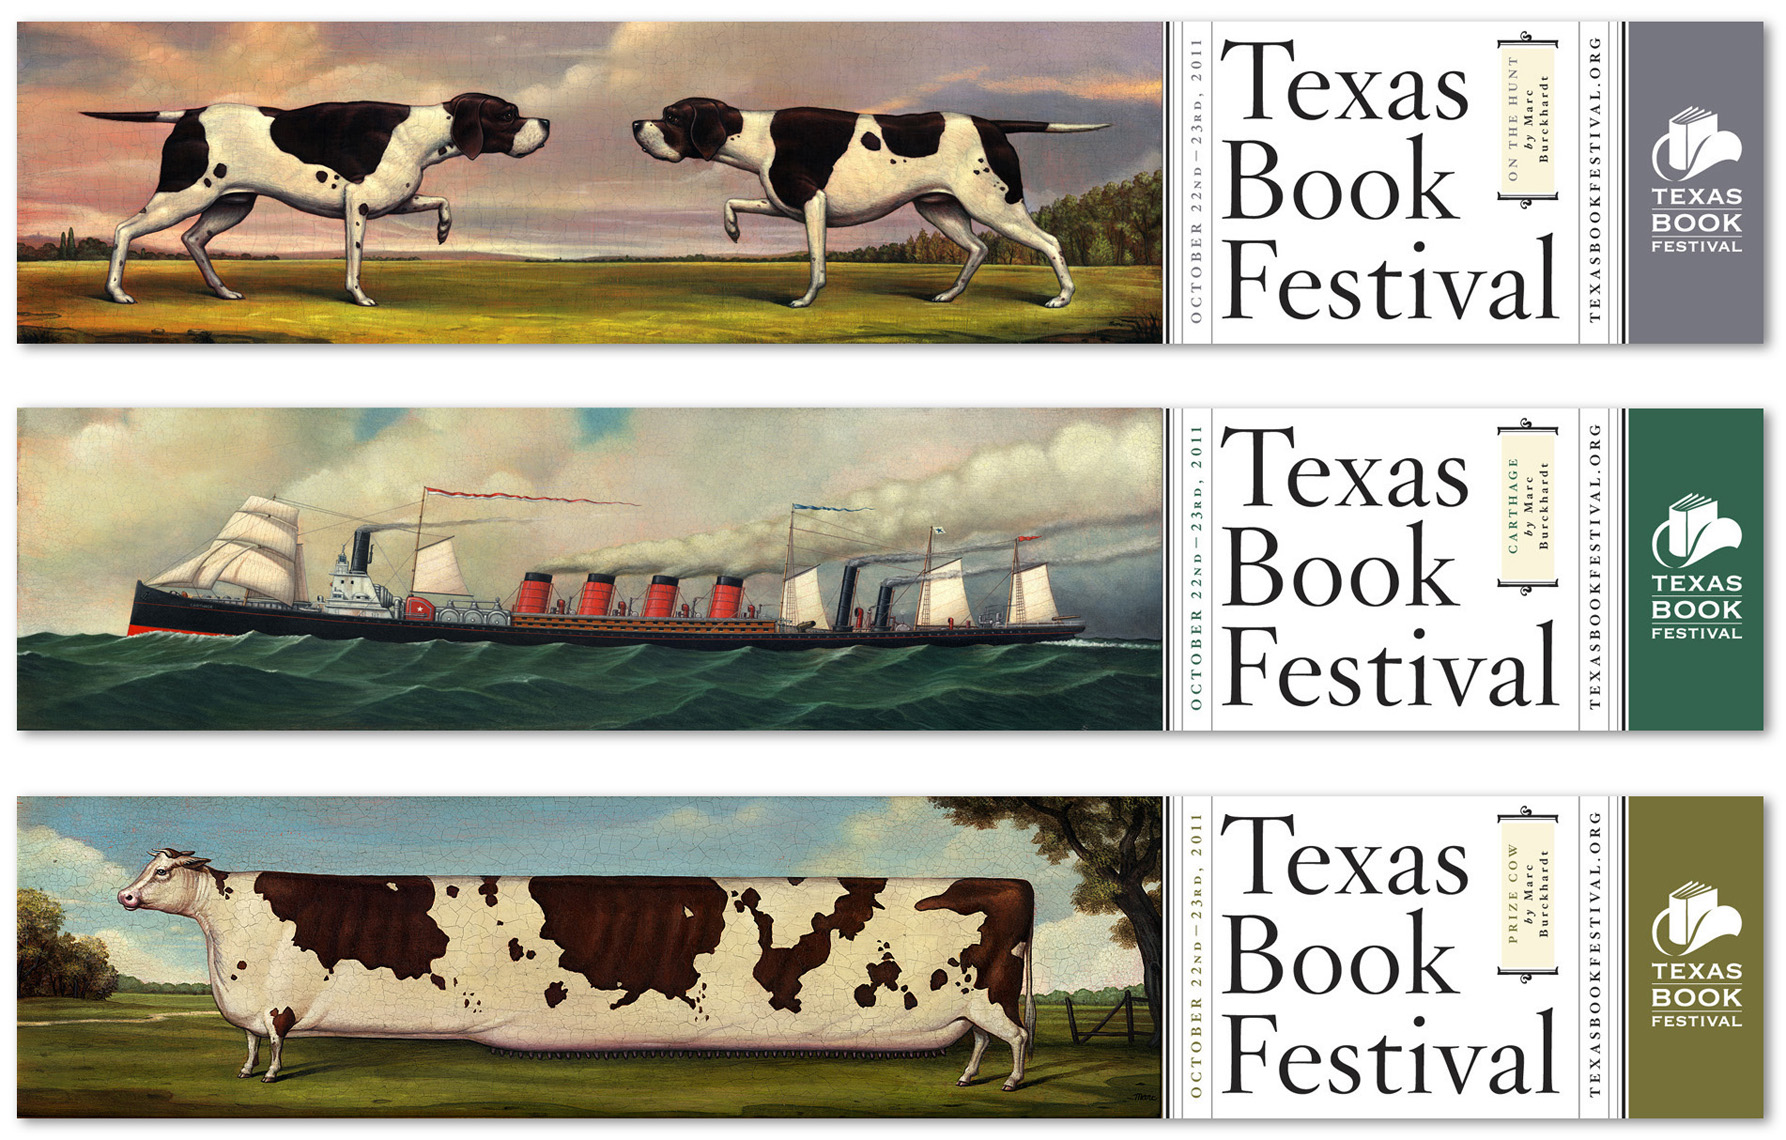 Texas Book Festival Art